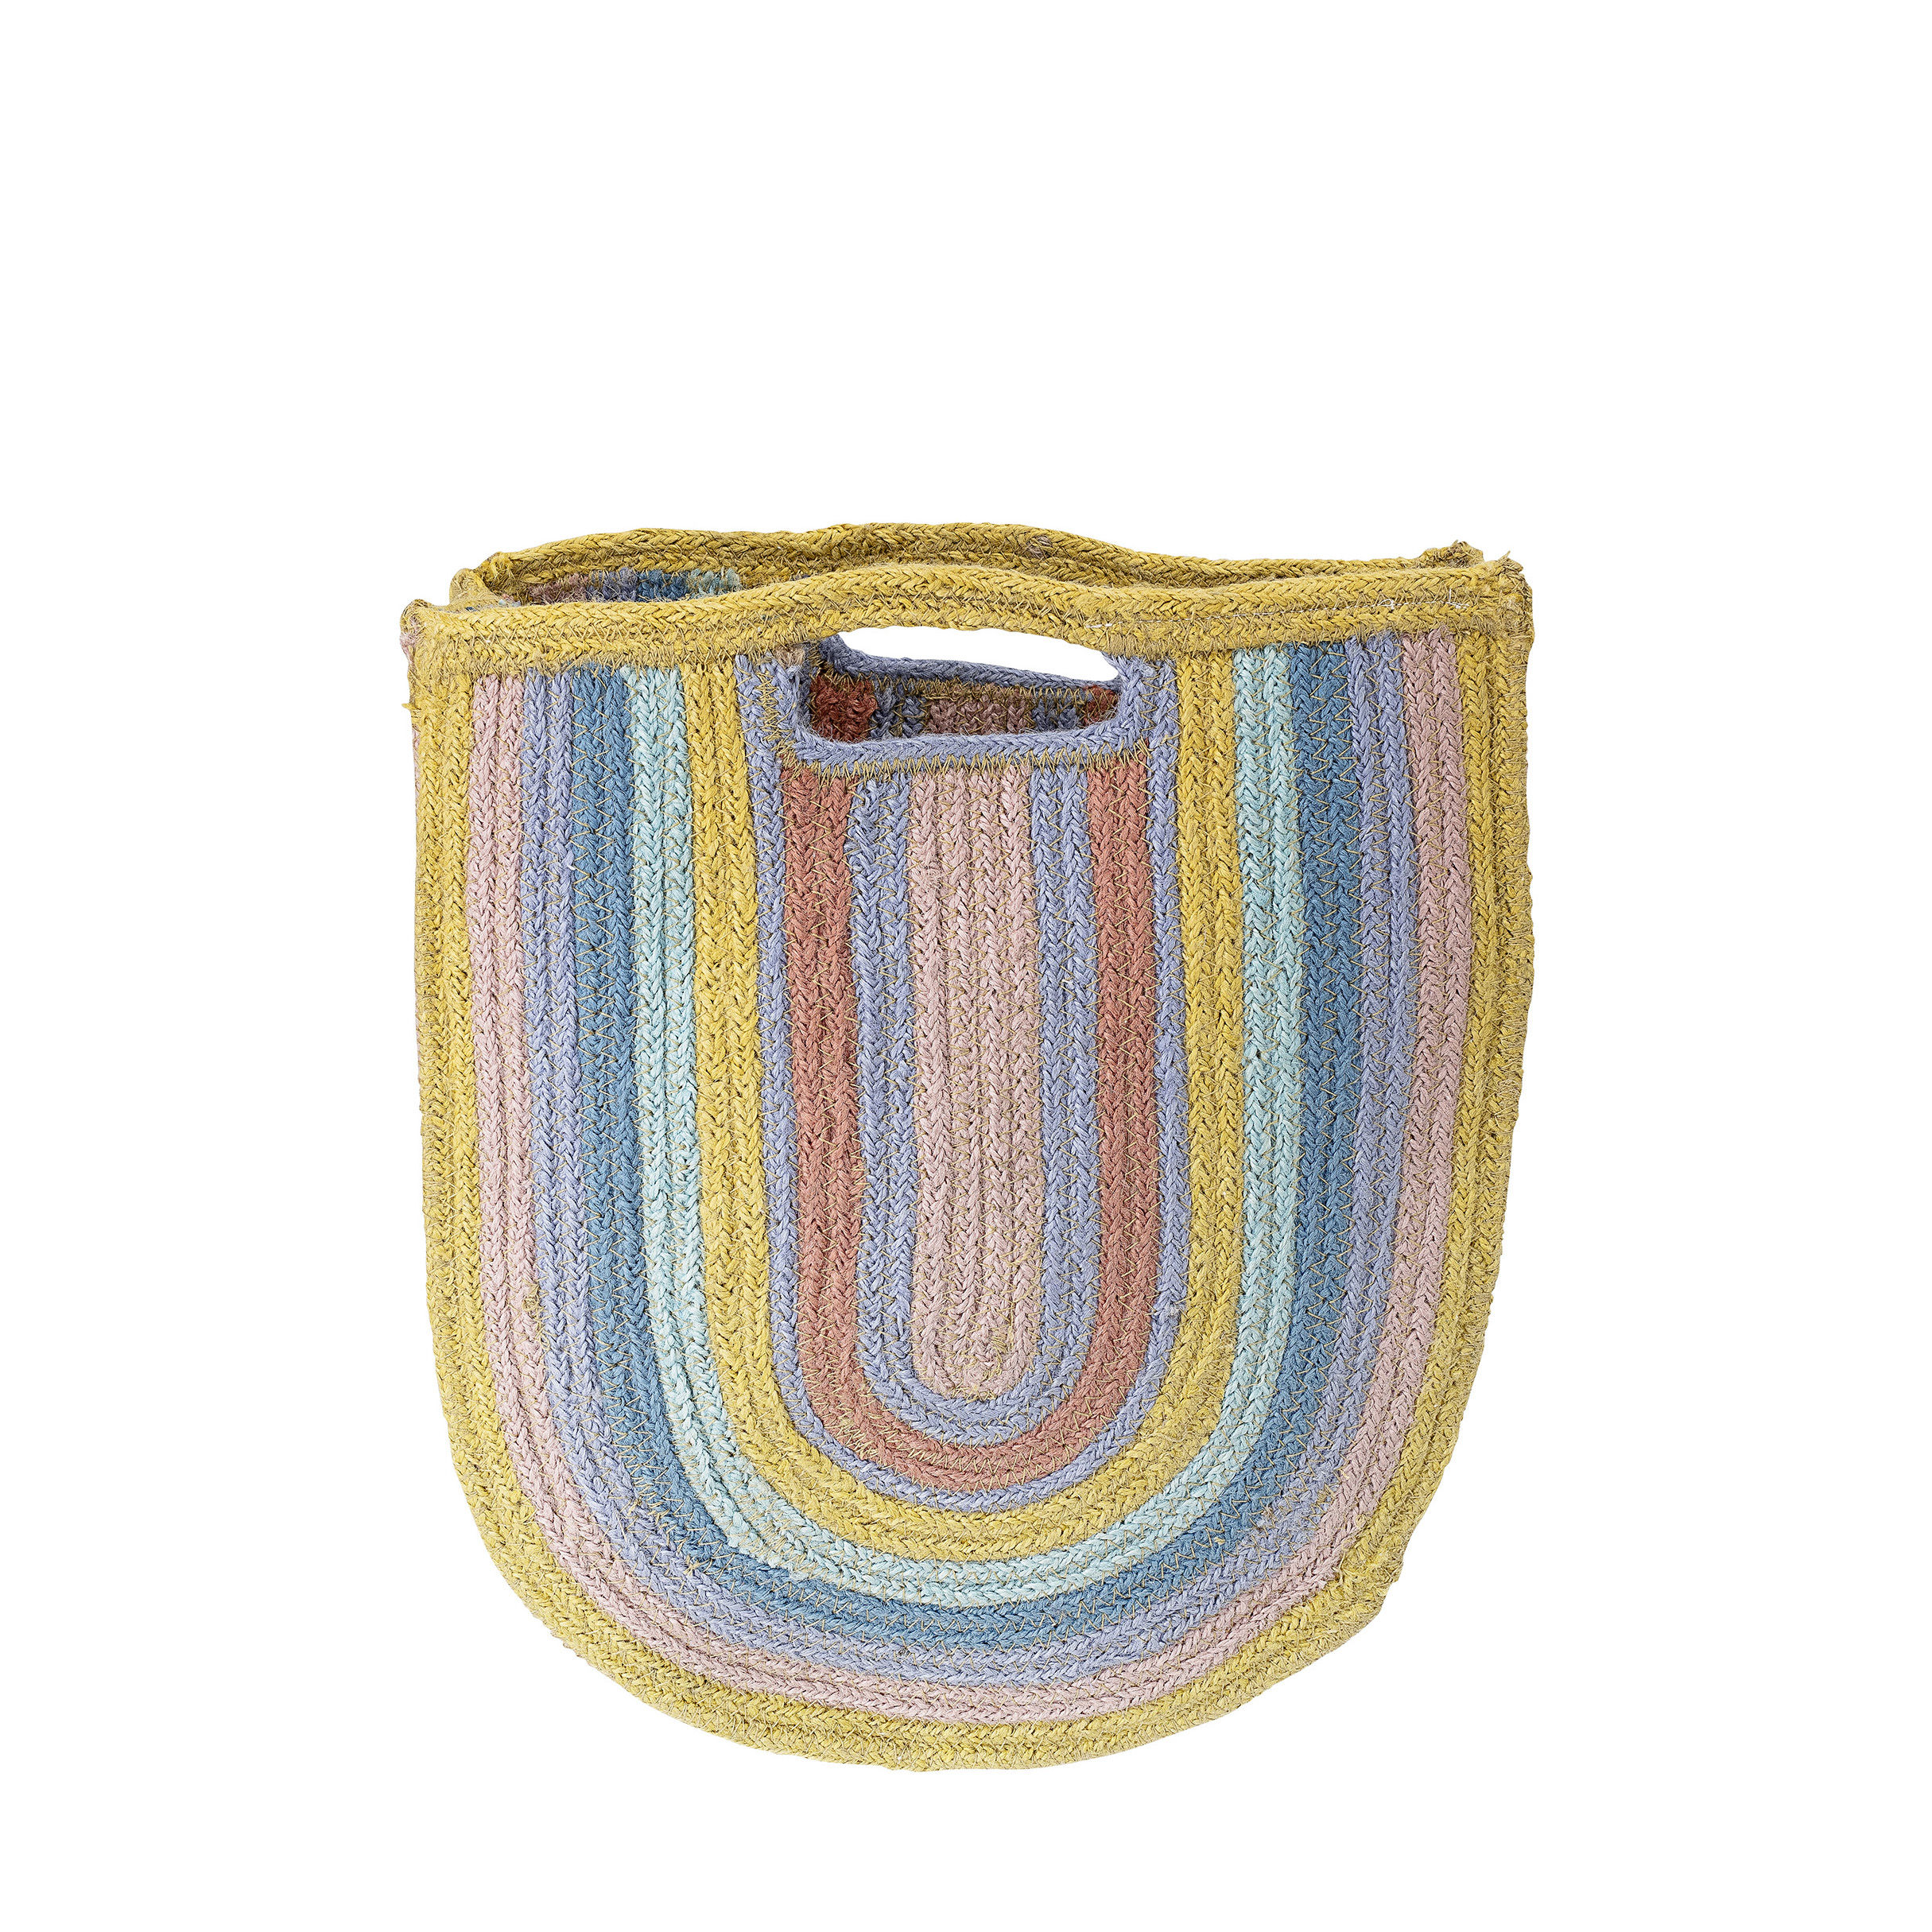 Decoration - Children's Home Accessories - Shopping bag - / Hessian by Bloomingville - Multicoloured - Hessian